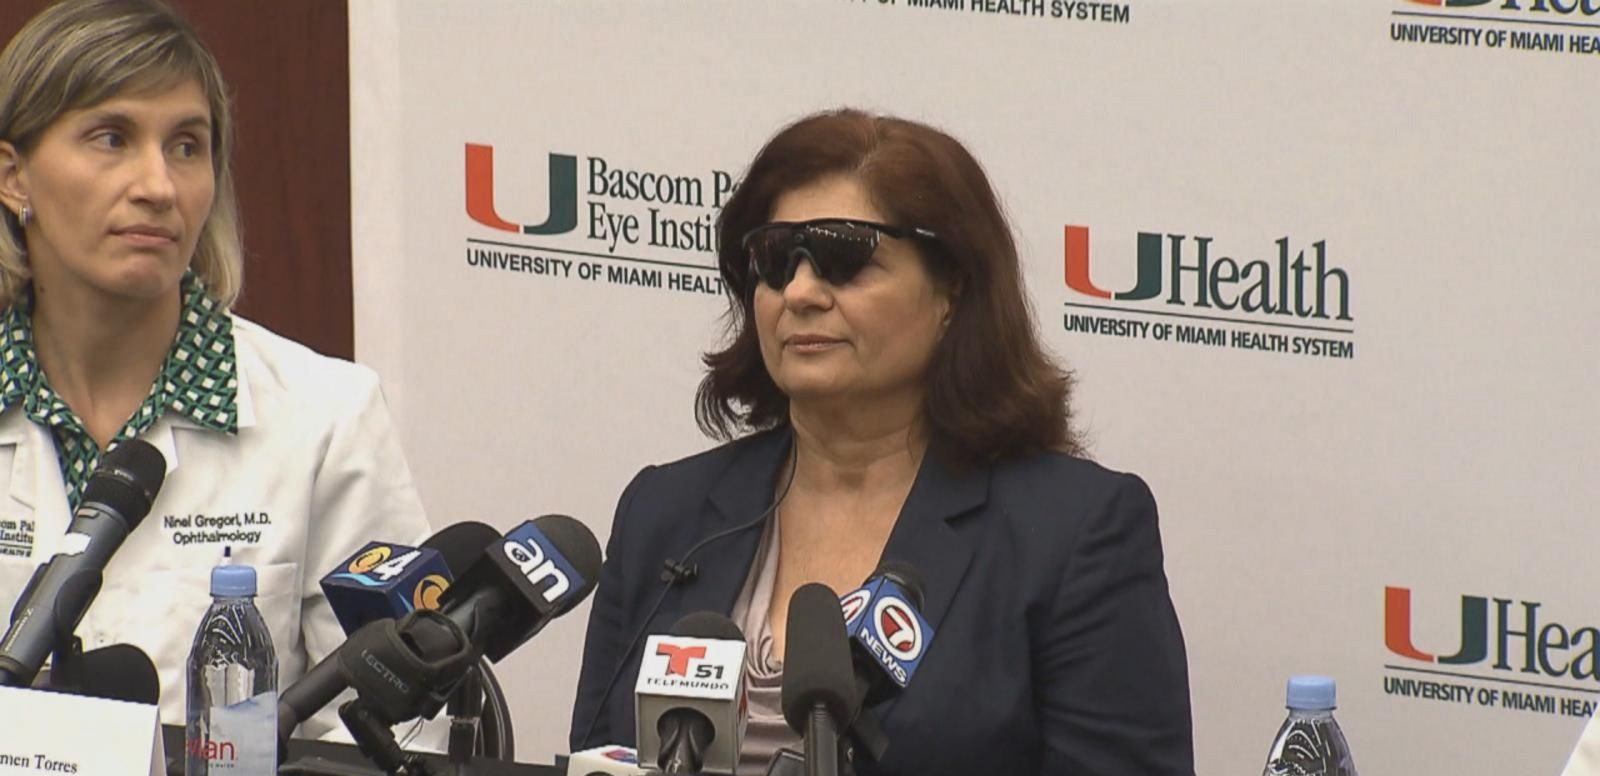 VIDEO: Bionic Eye Restores Woman's Vision